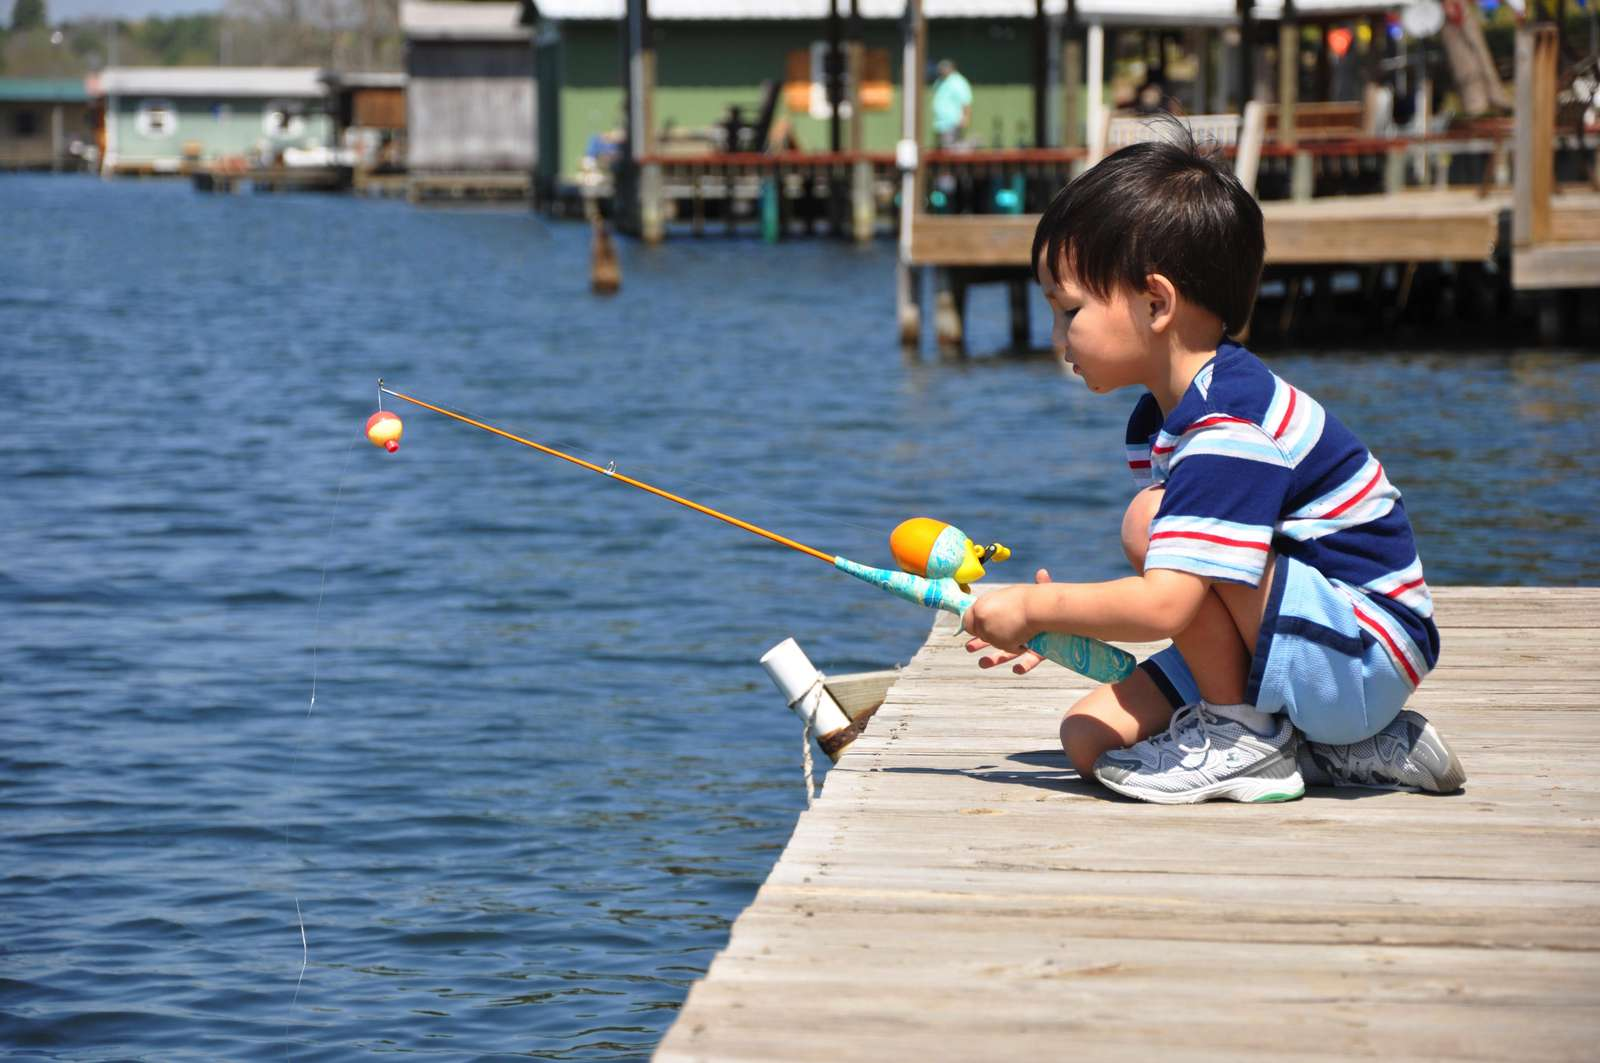 Theres nothing better than watching your kids catch a fish, it's even better when it's their first. We can offer tips to help.